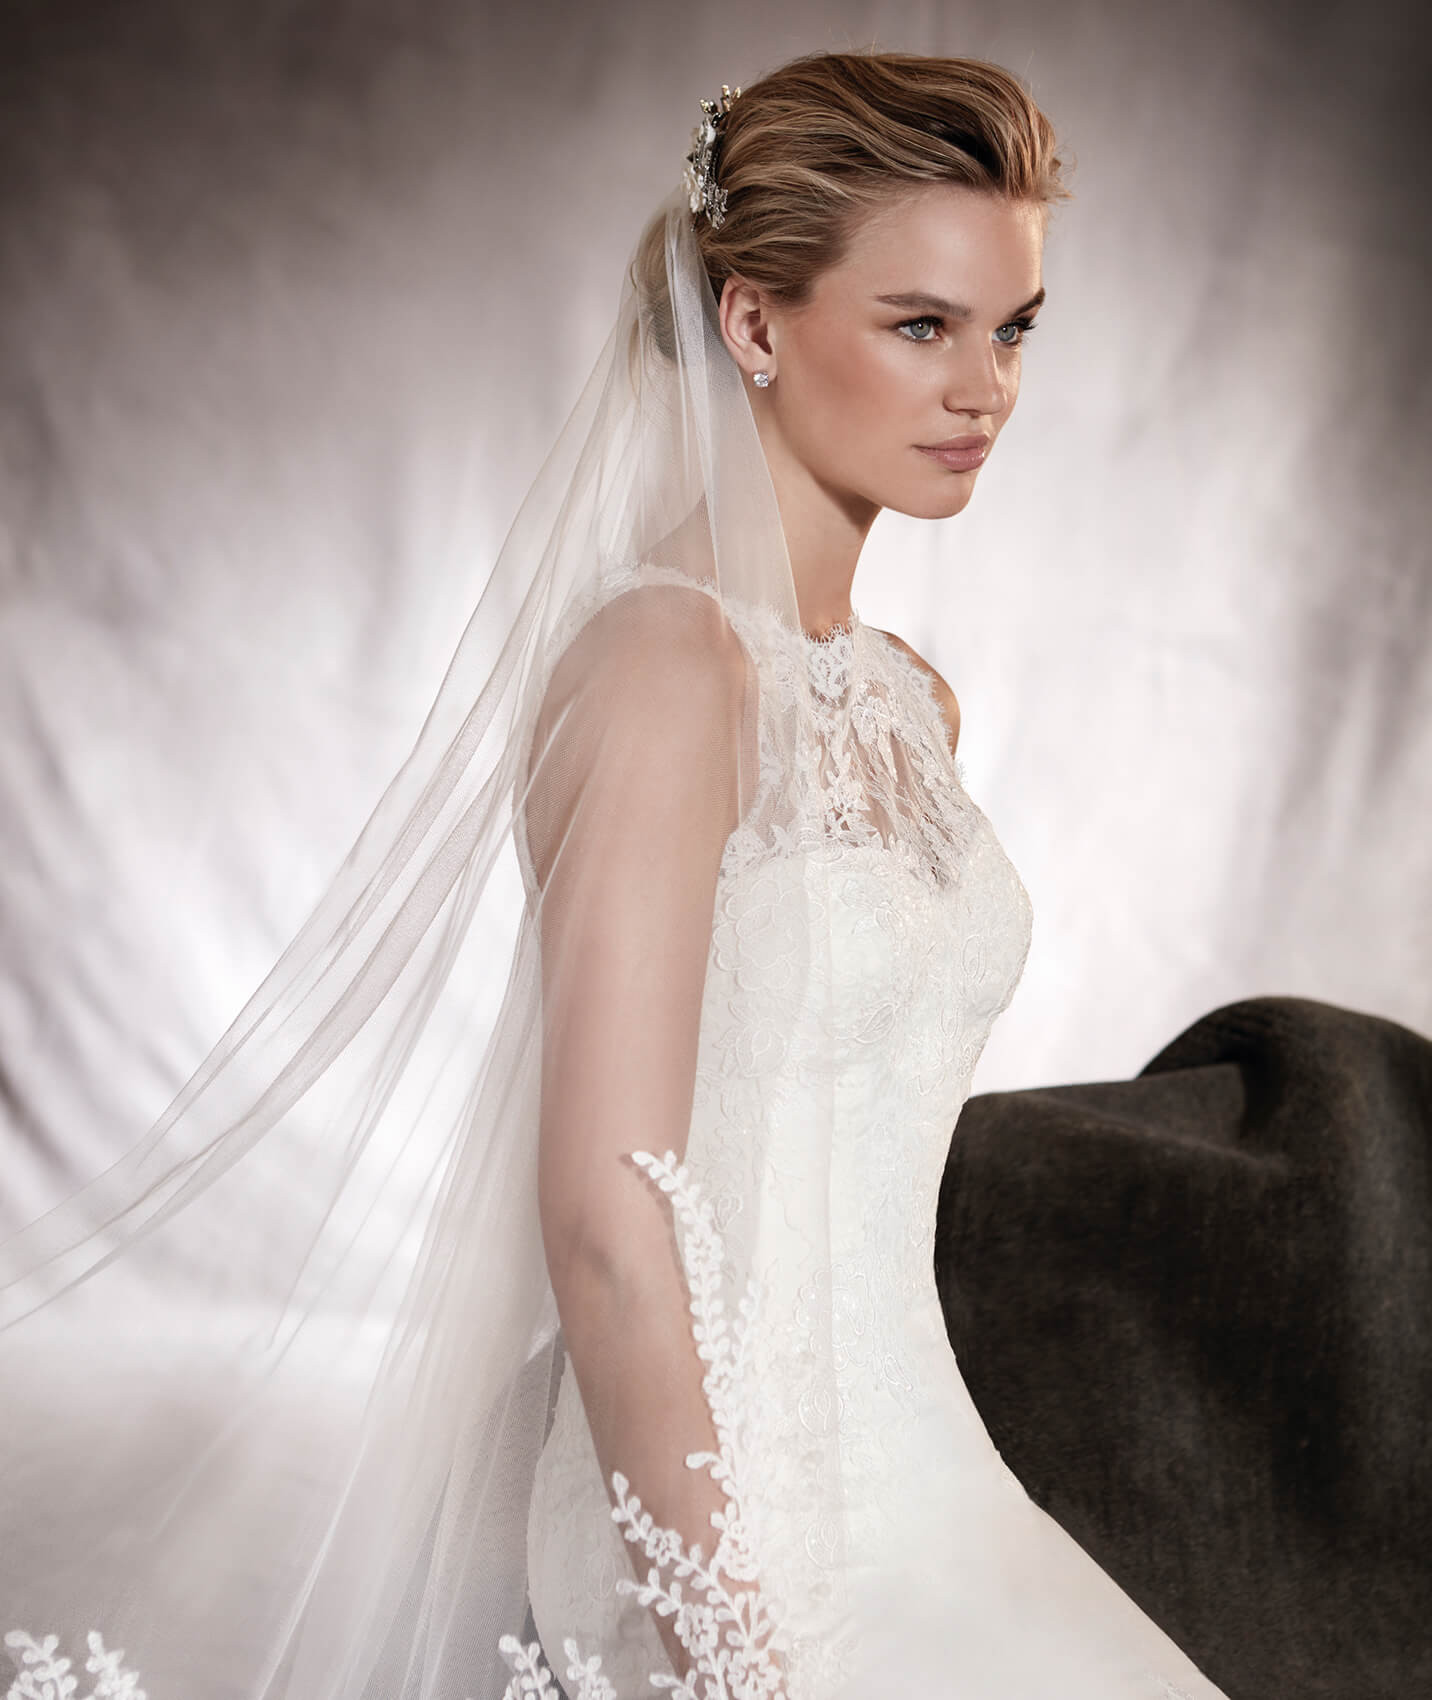 Wedding Dress Headpieces: Wedding Veil In White Tulle With Guipure Appliqués